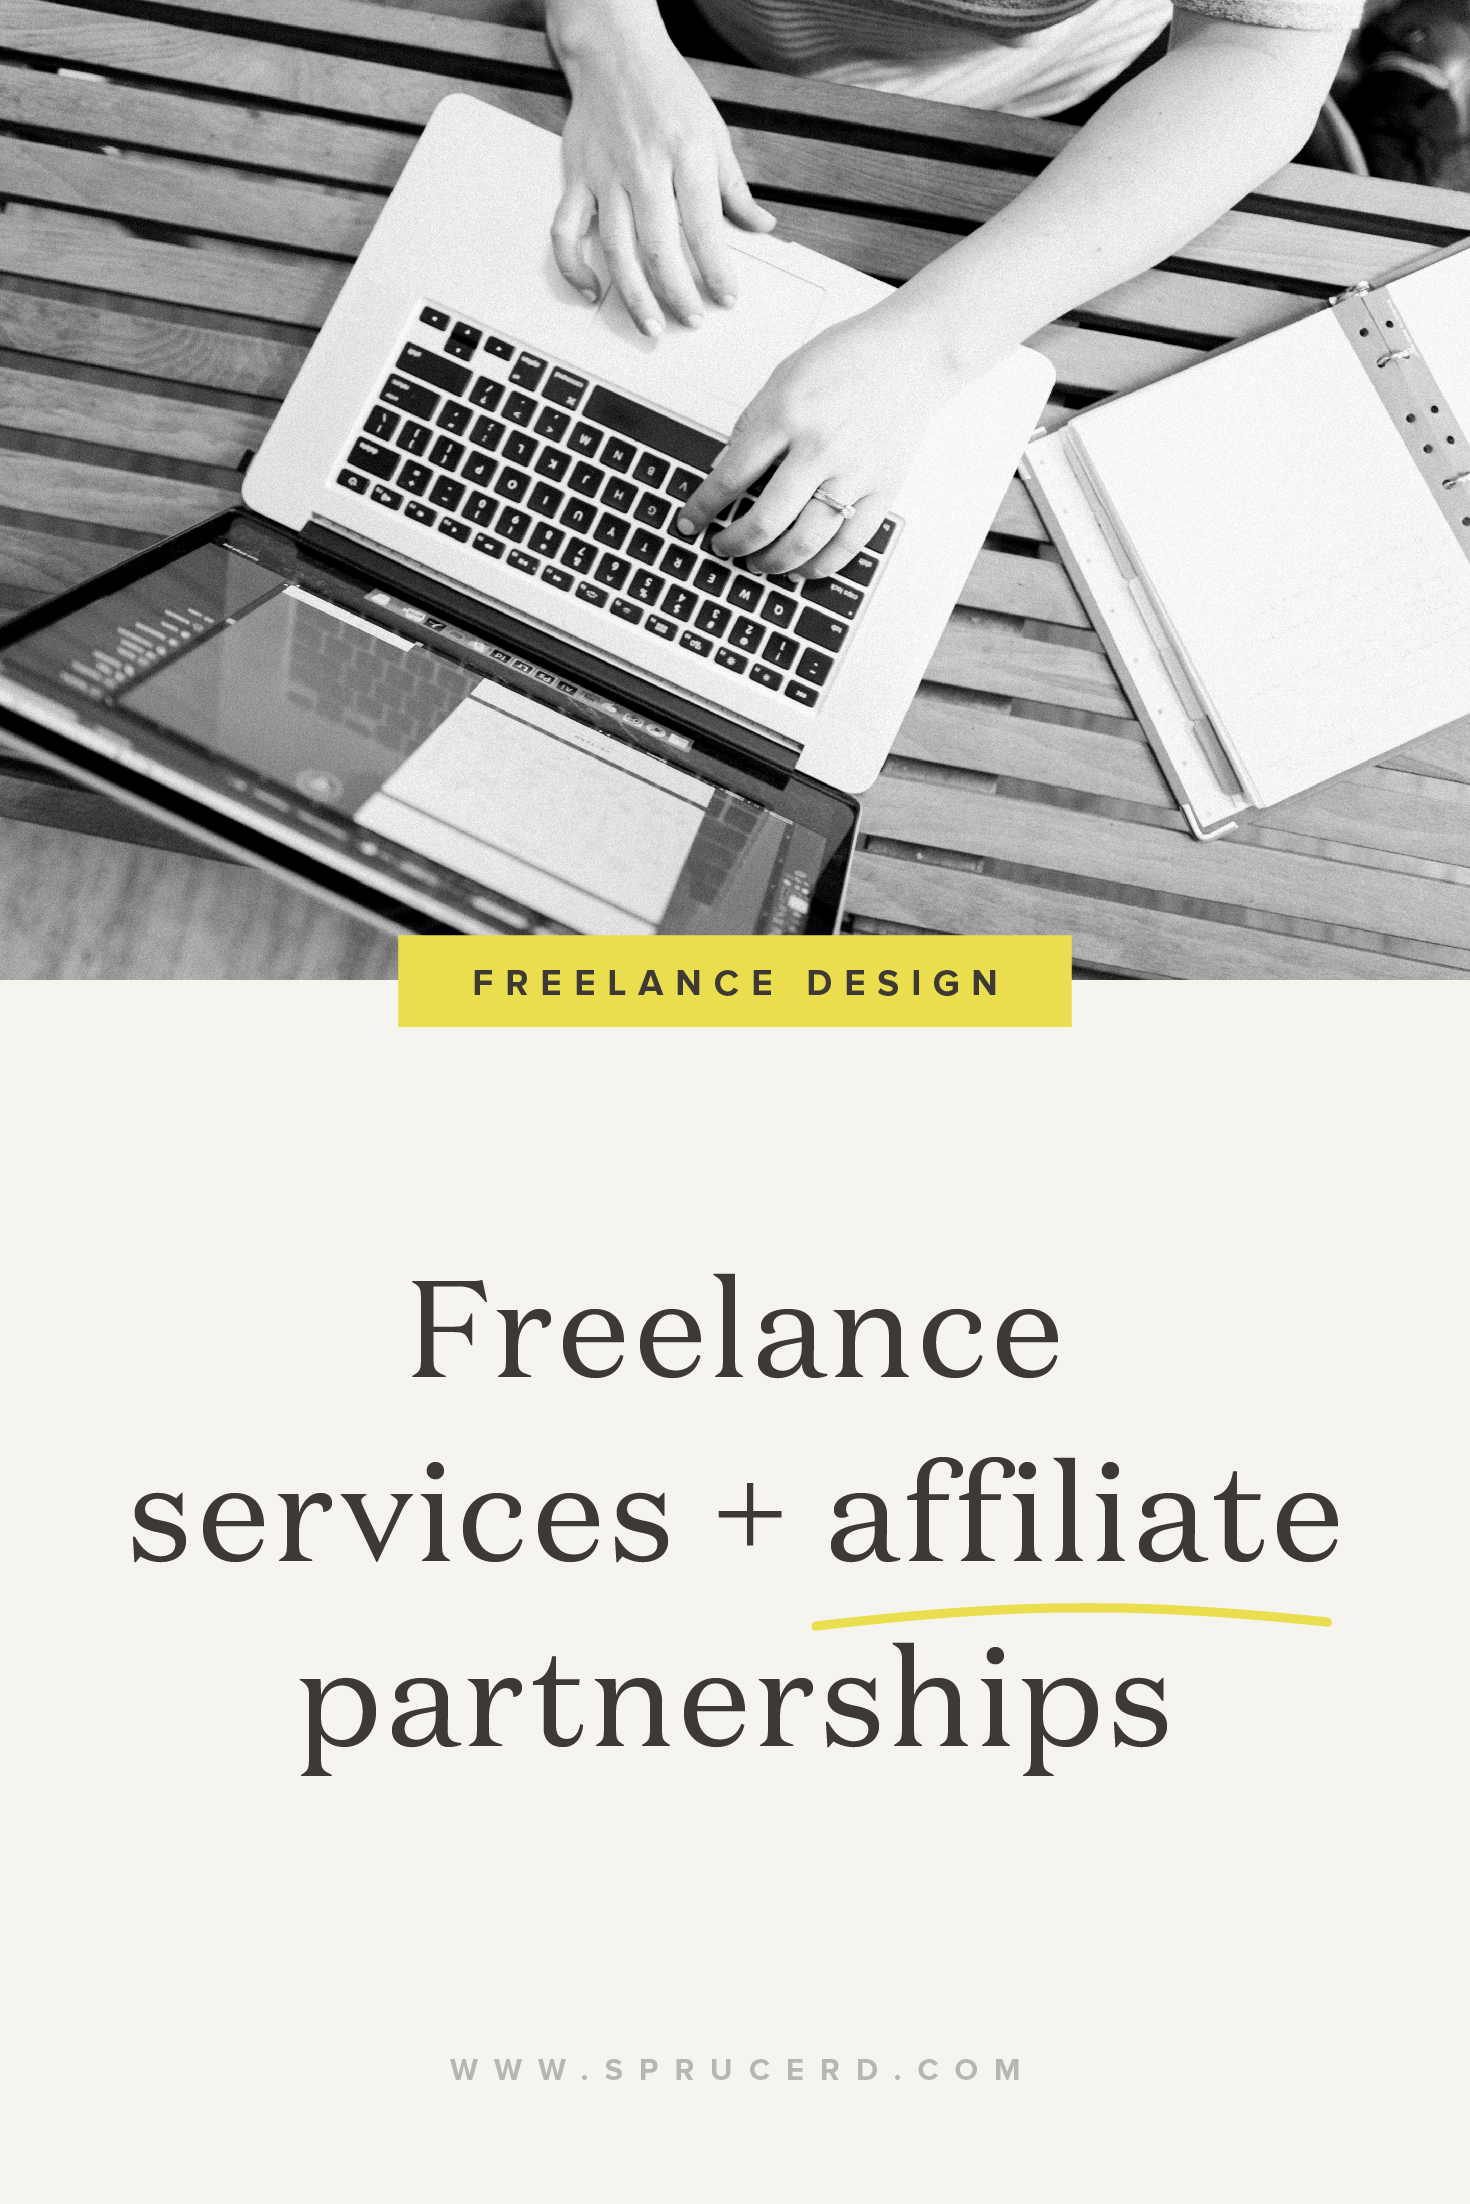 Freelance design services + affiliate partnerships — how to tactfully include affiliates as a passive income stream for your freelance design studio.